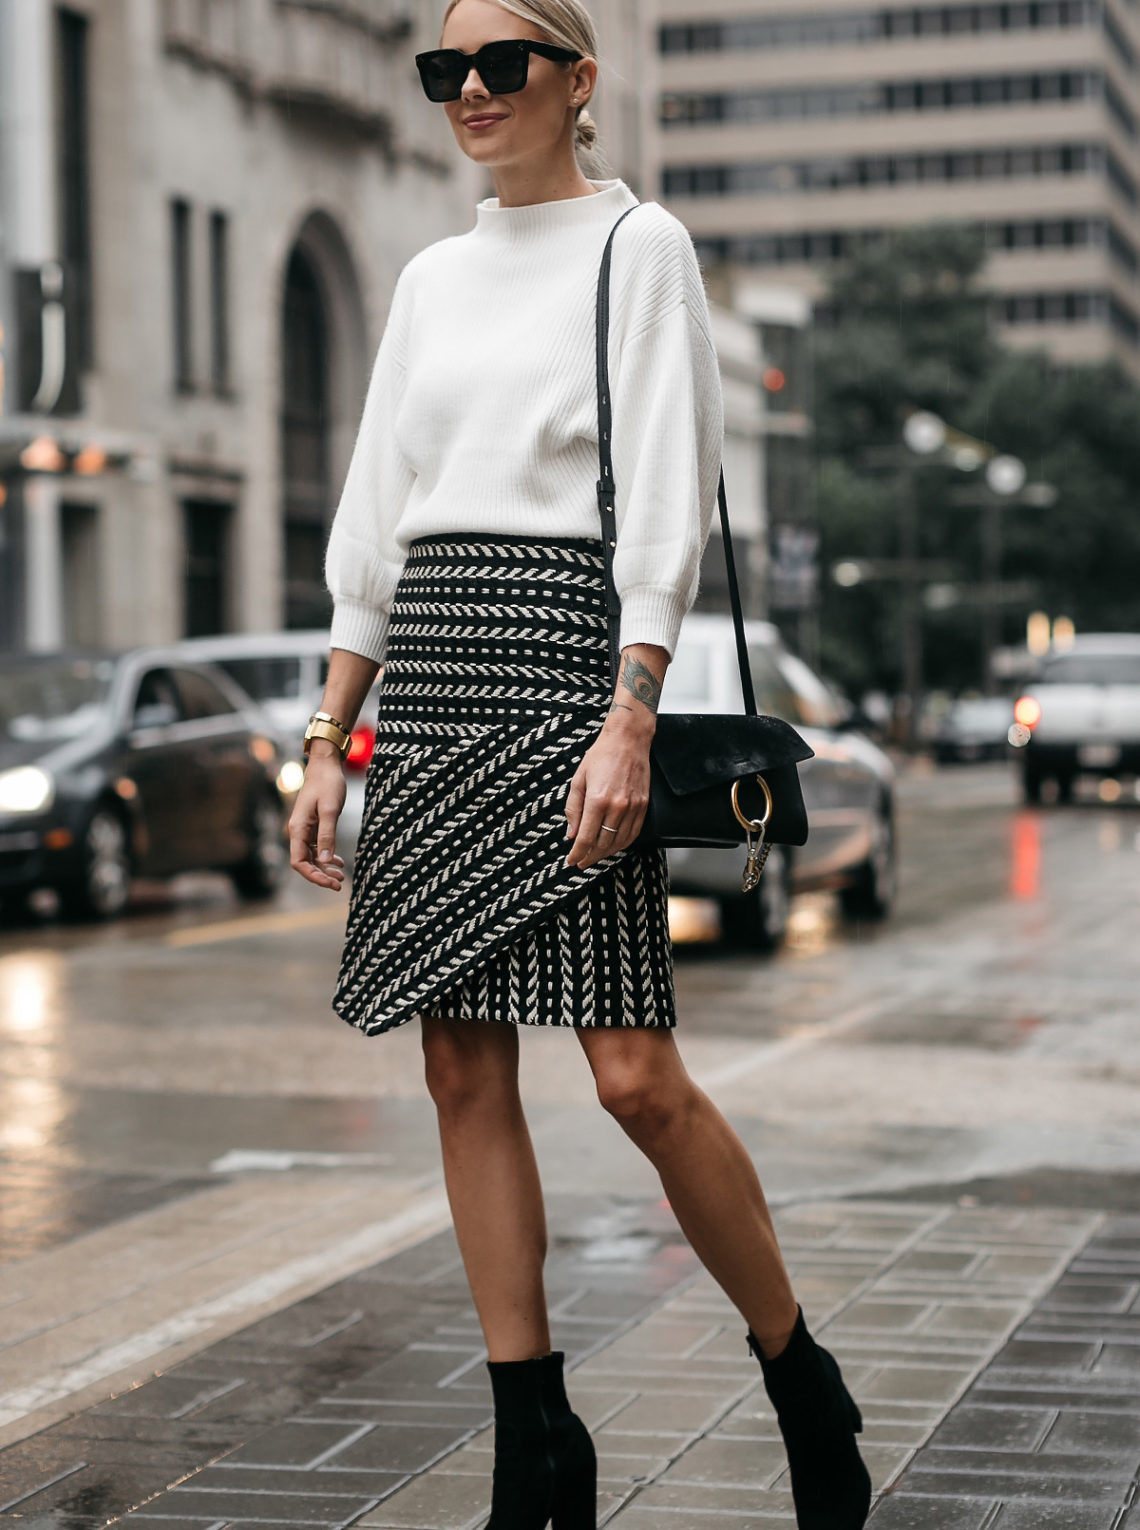 Fashion Jackson White Sweater Black and White Jaquard Skirt Black Ankle Booties Chloe Faye Handbag 3